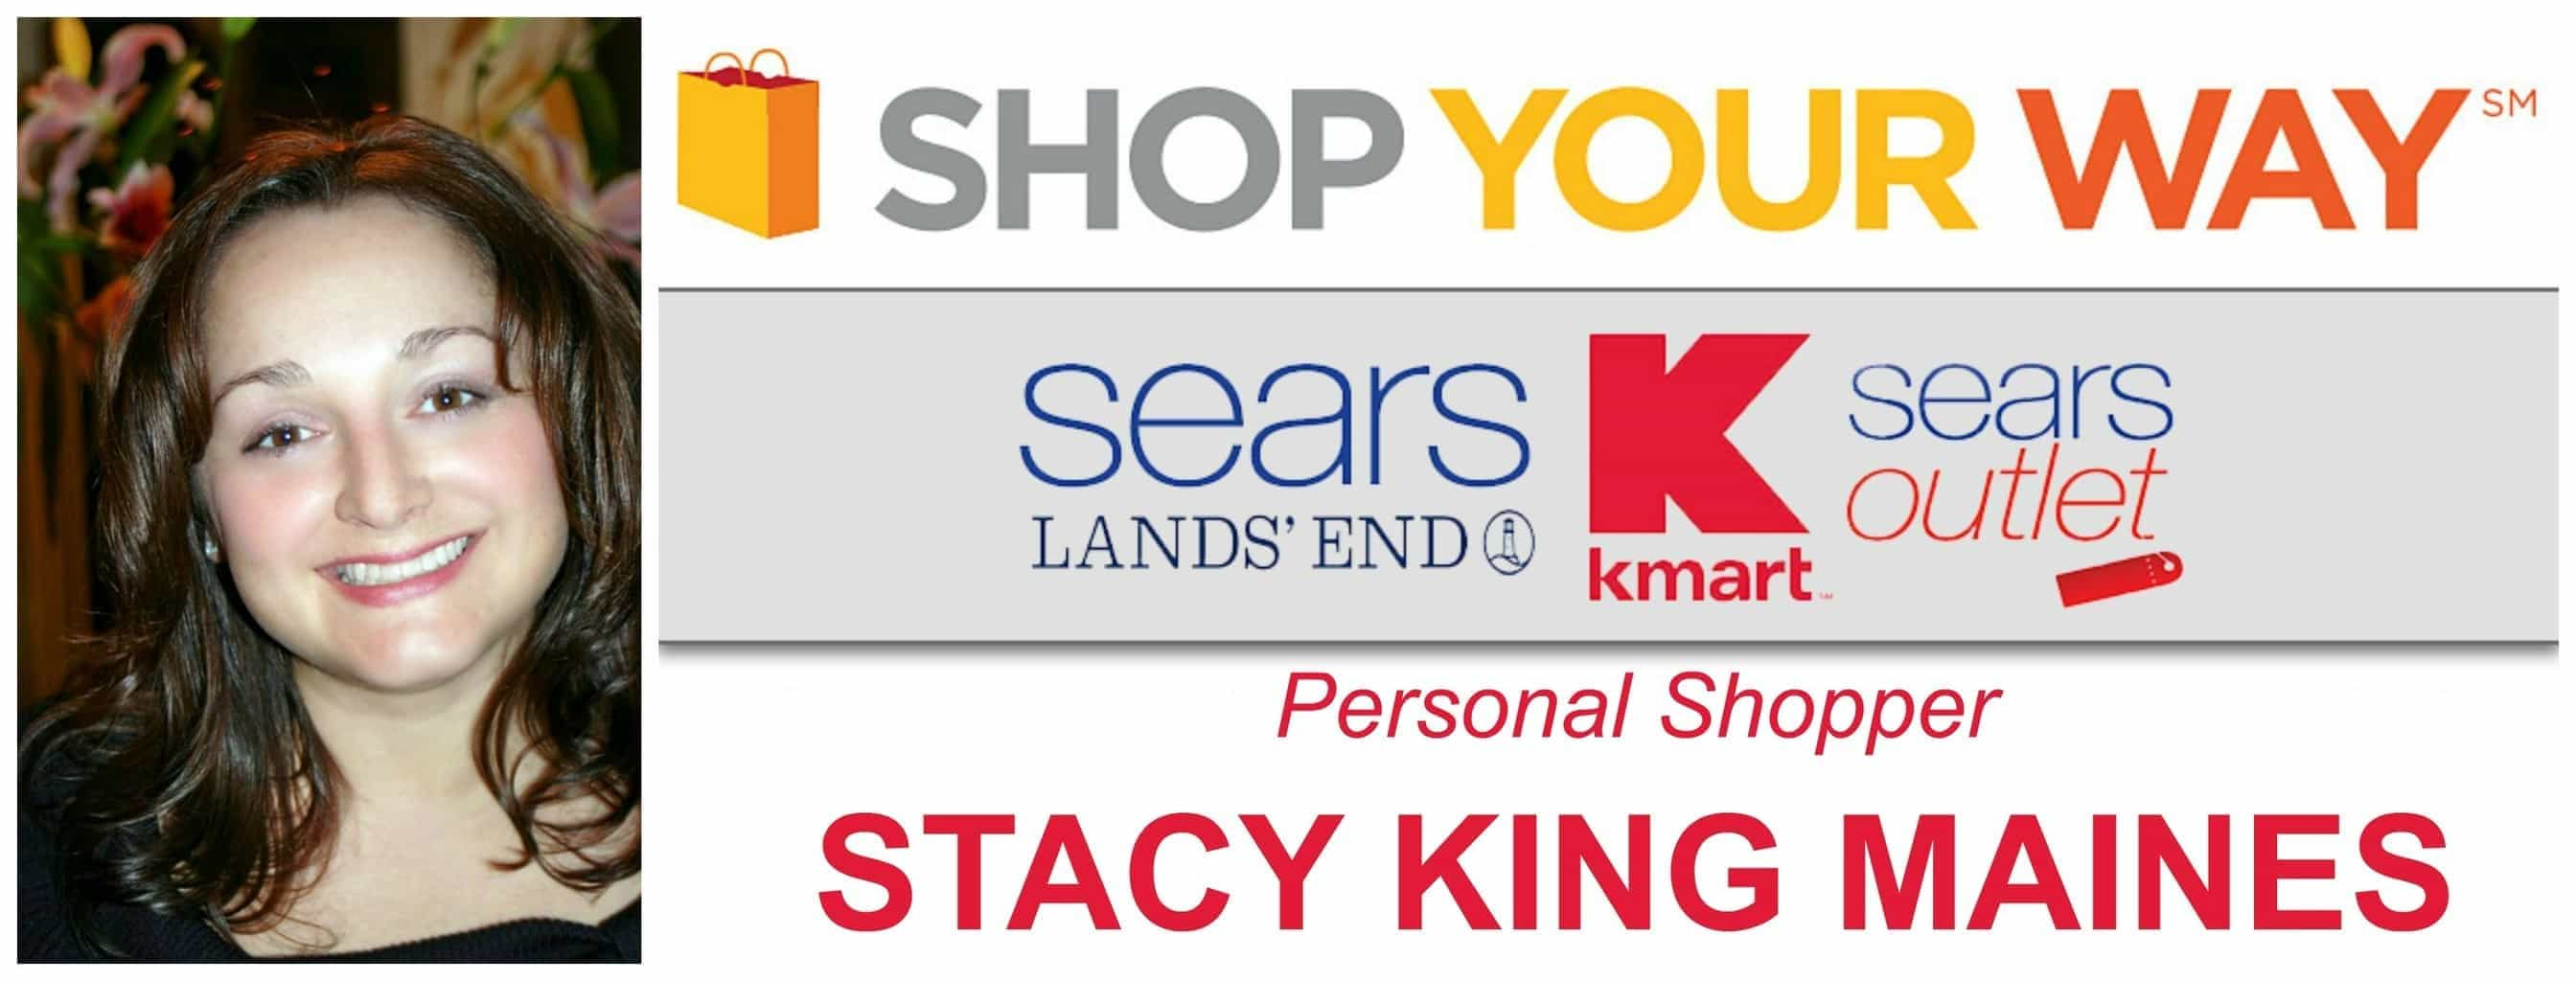 Shop_Your_Way_with_Stacy_King